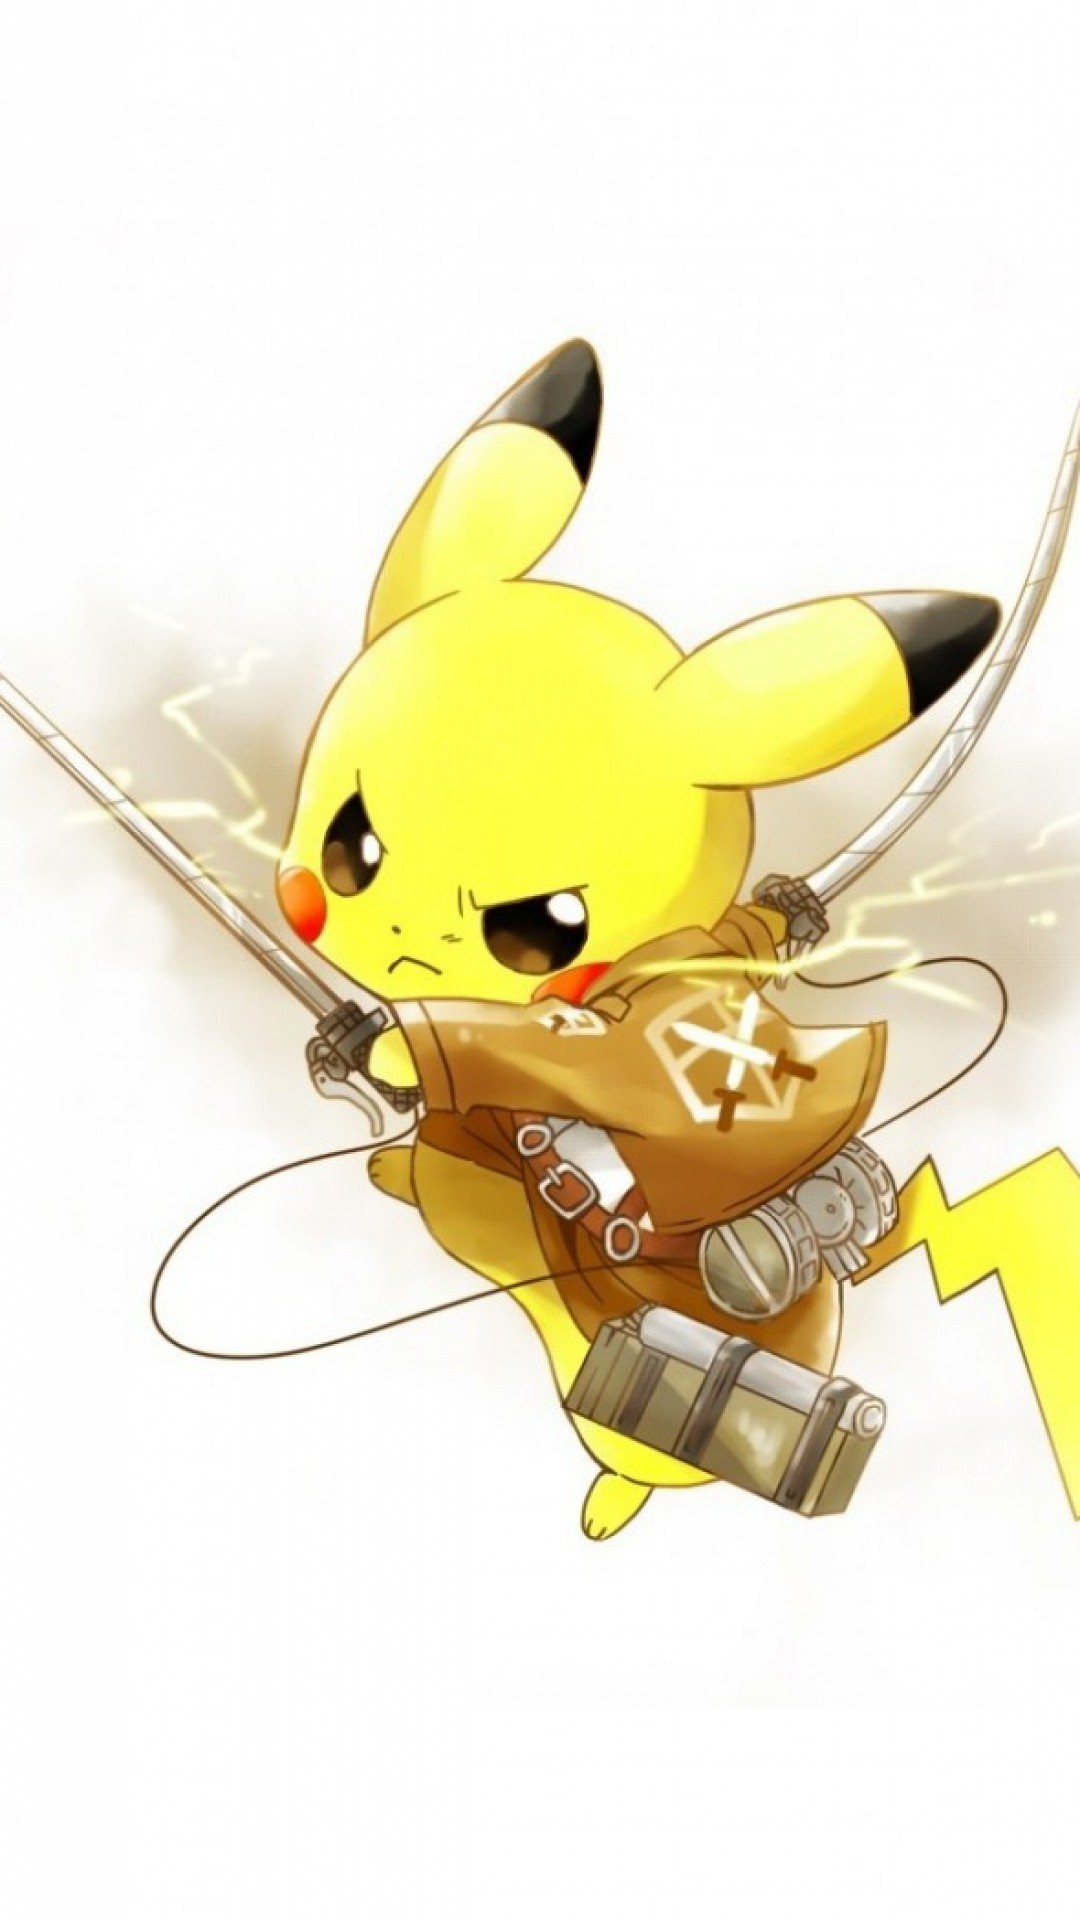 Pikachu Hd Wallpapers For Iphone 6 Plus Wallpapers Pictures